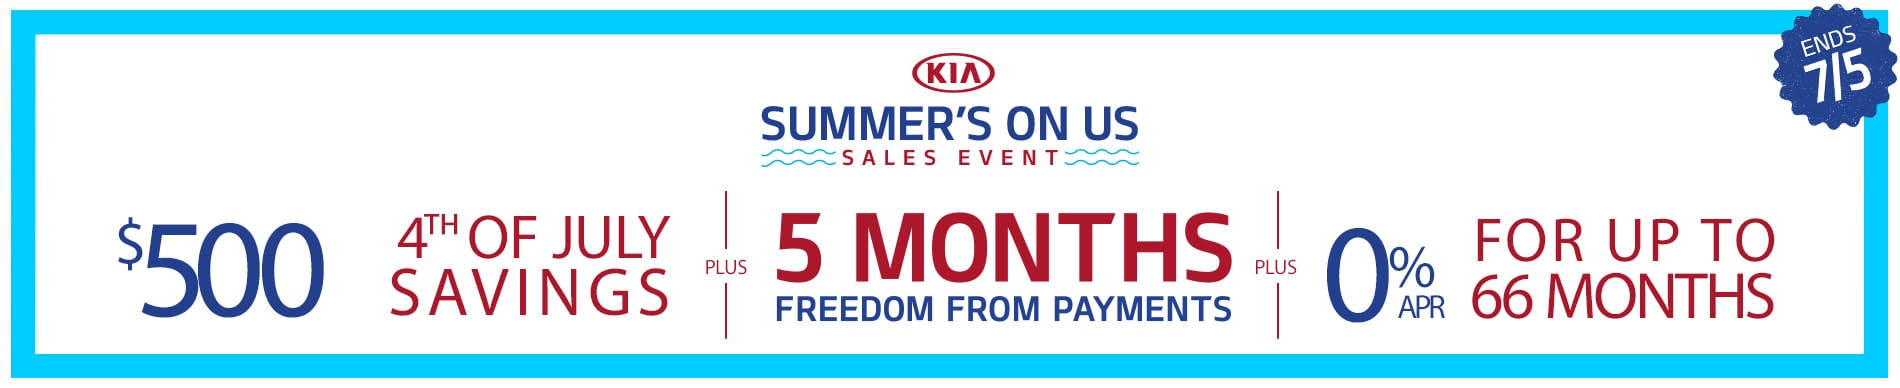 Kia Summer On Us Sales Event - no payments for 5 months plus get 0% apr financing up to 66 months on select Kia's